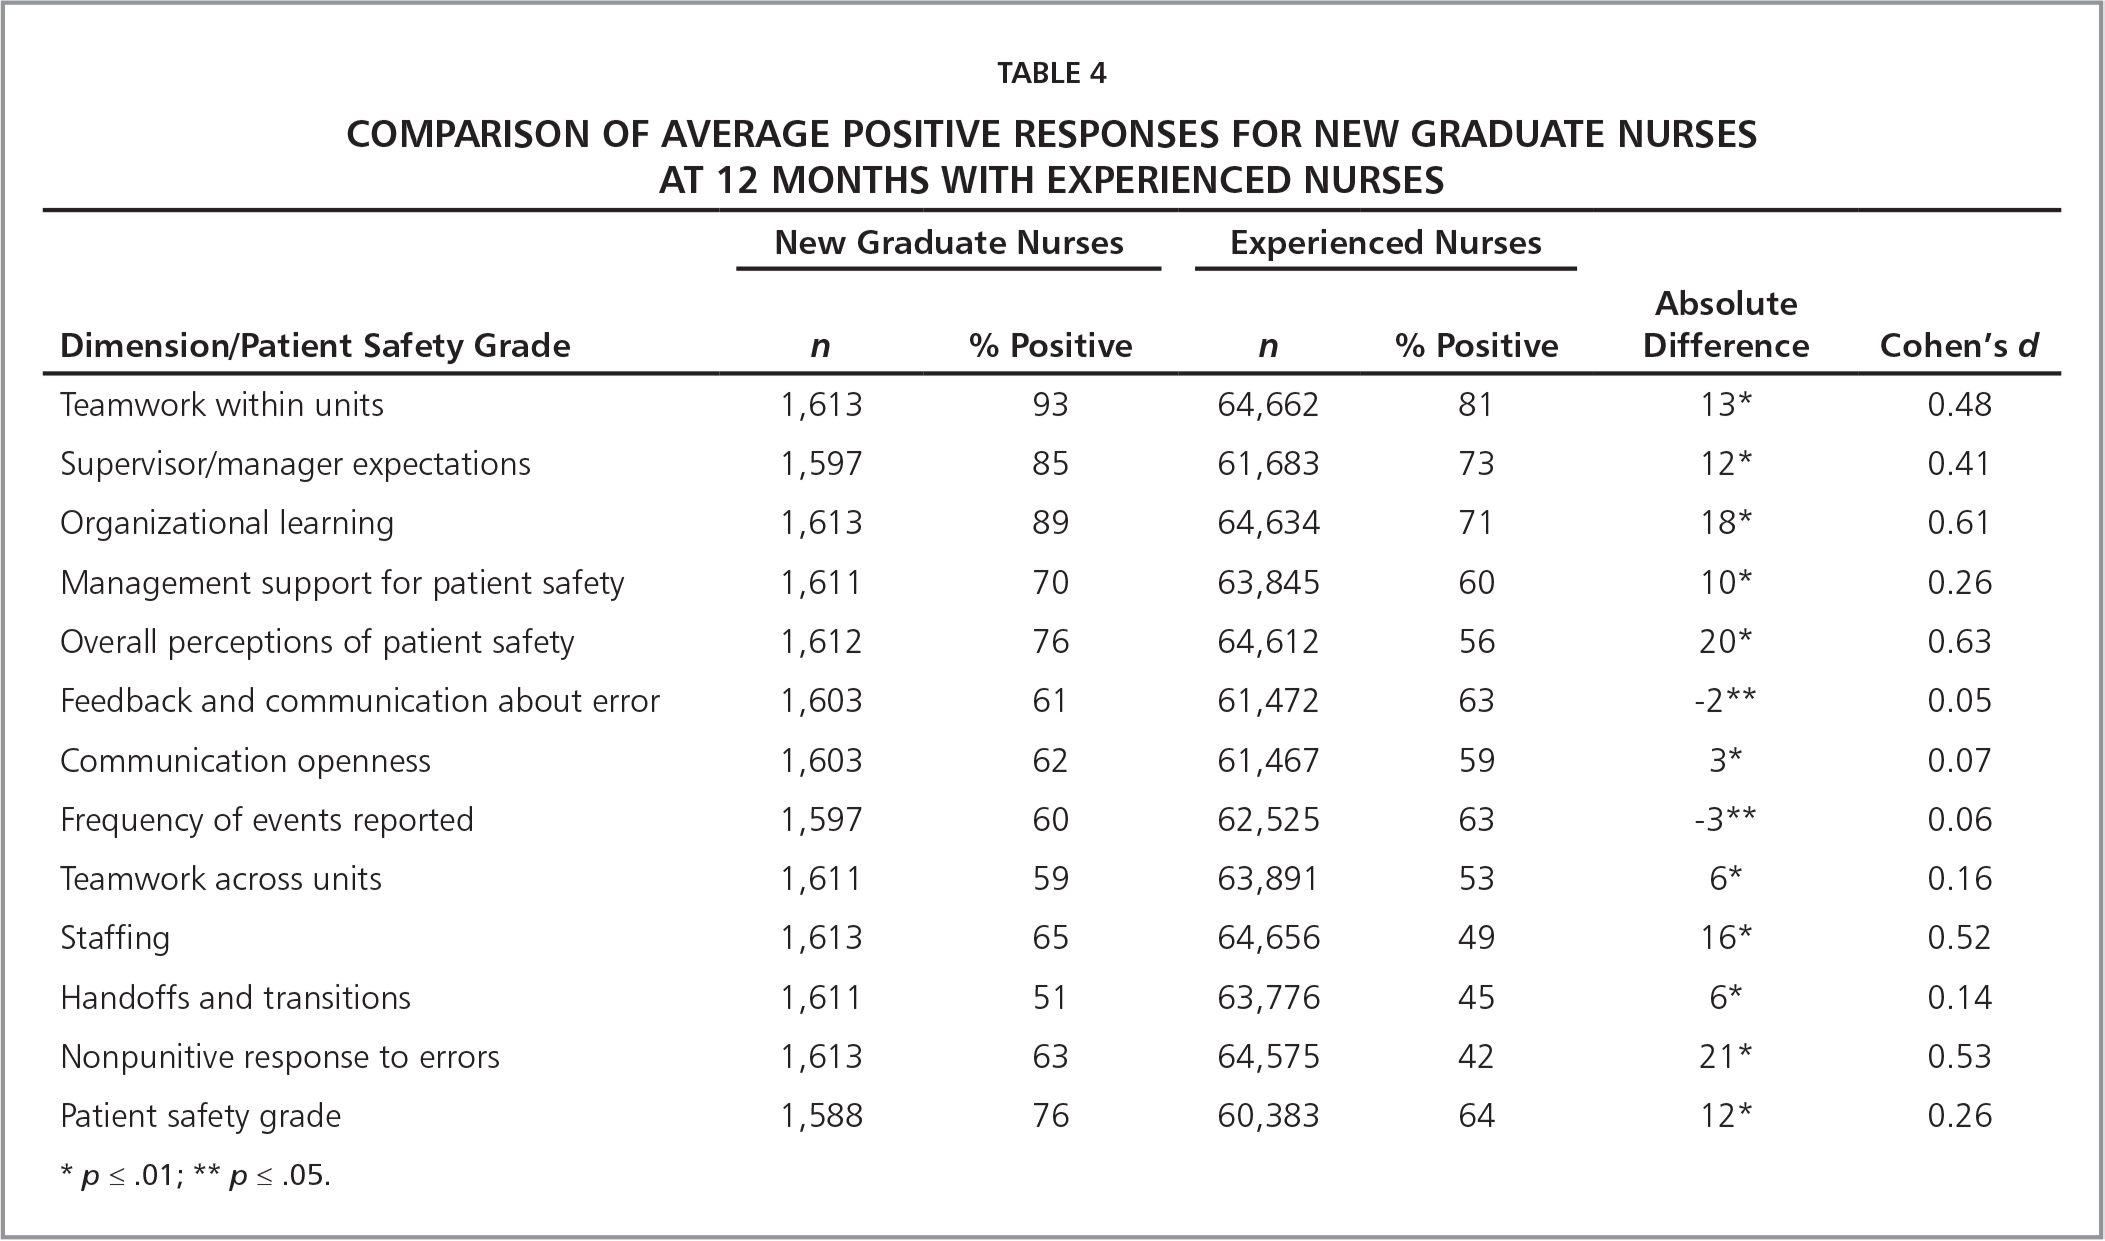 Comparison of Average Positive Responses for New Graduate Nurses at 12 Months with Experienced Nurses